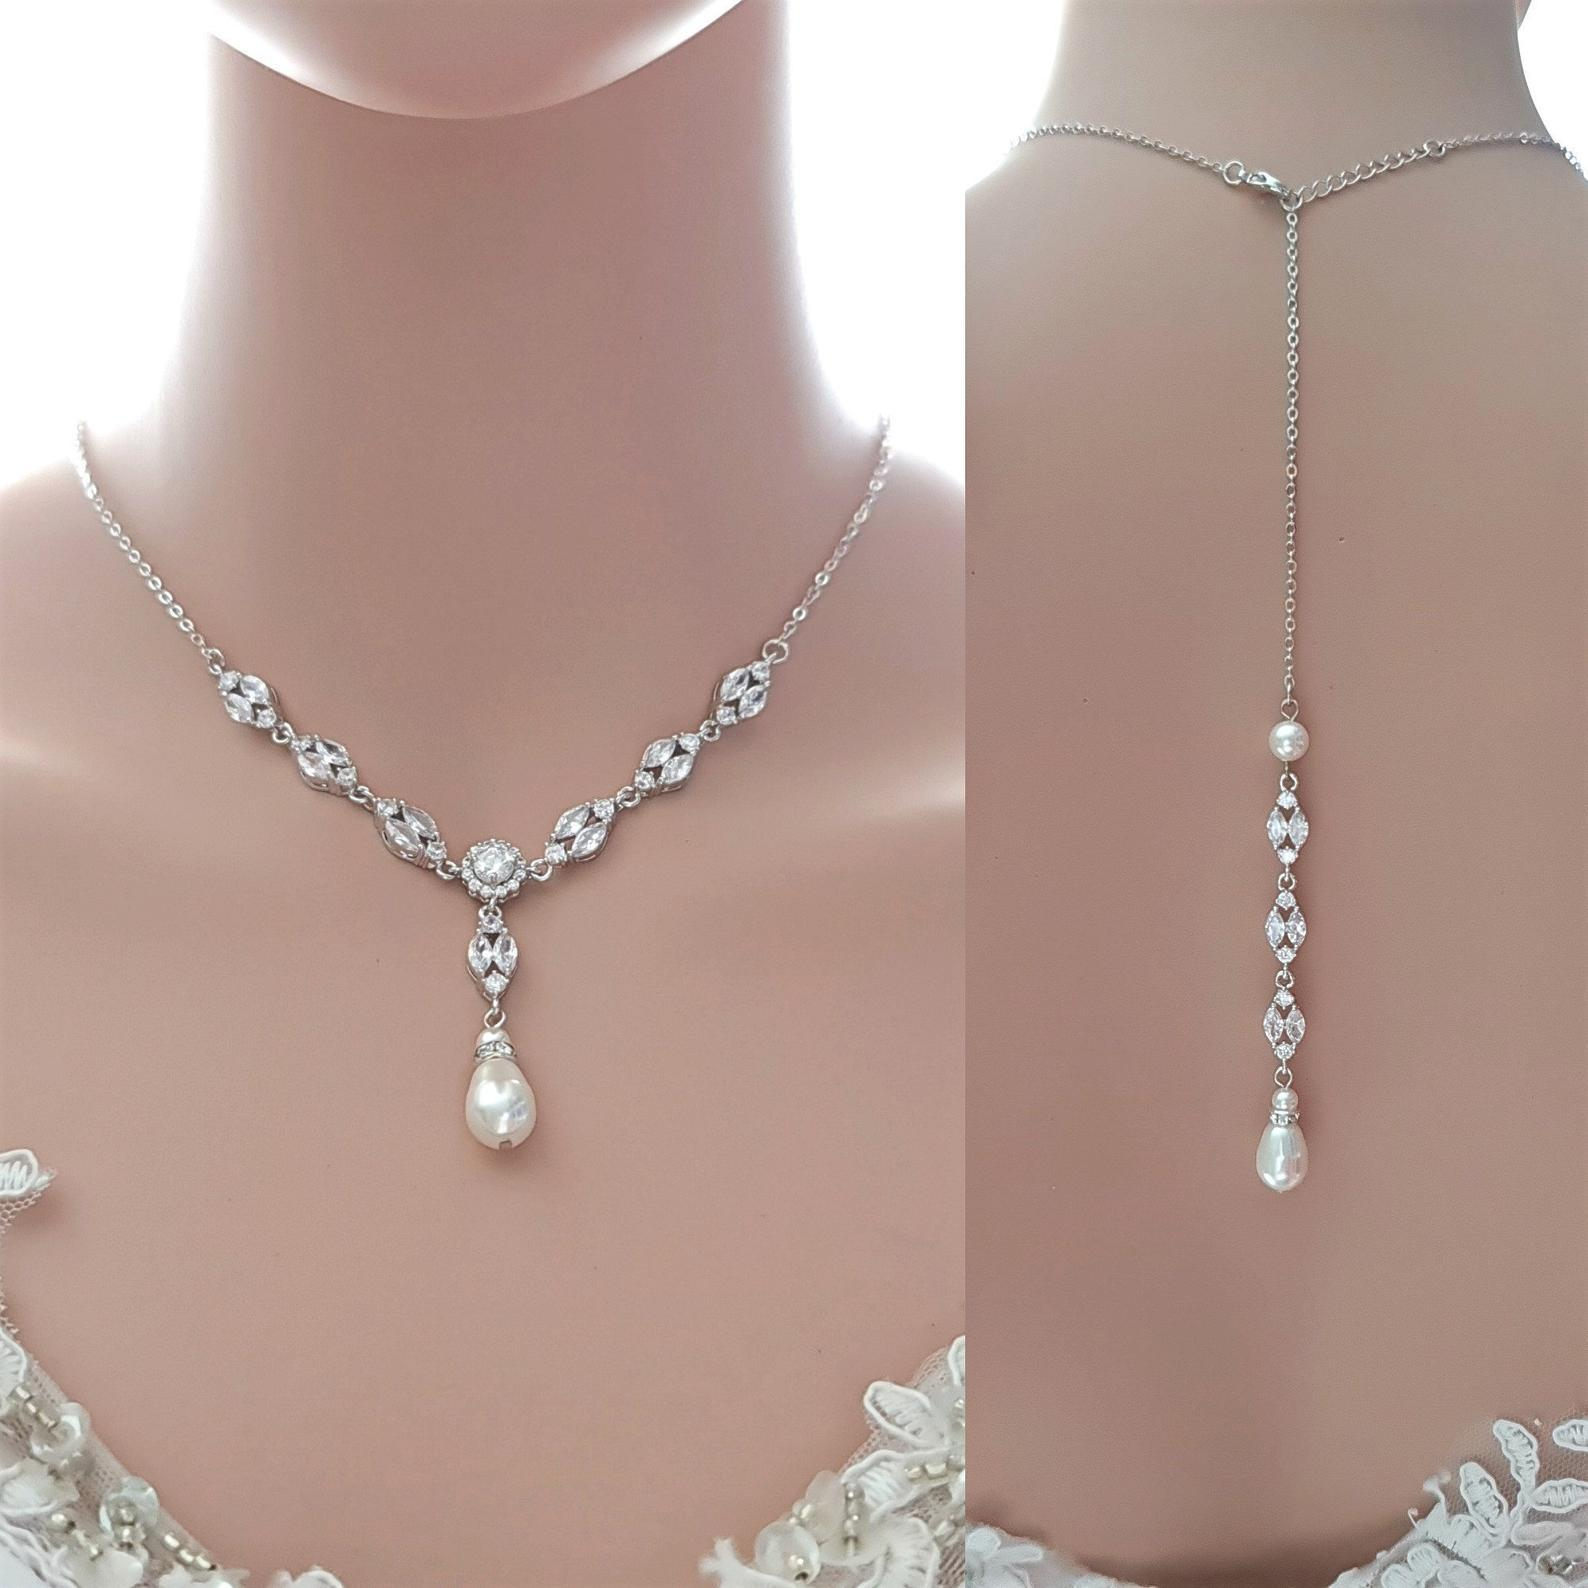 3 Piece Jewelry Set for Wedding- Hayley - PoetryDesigns